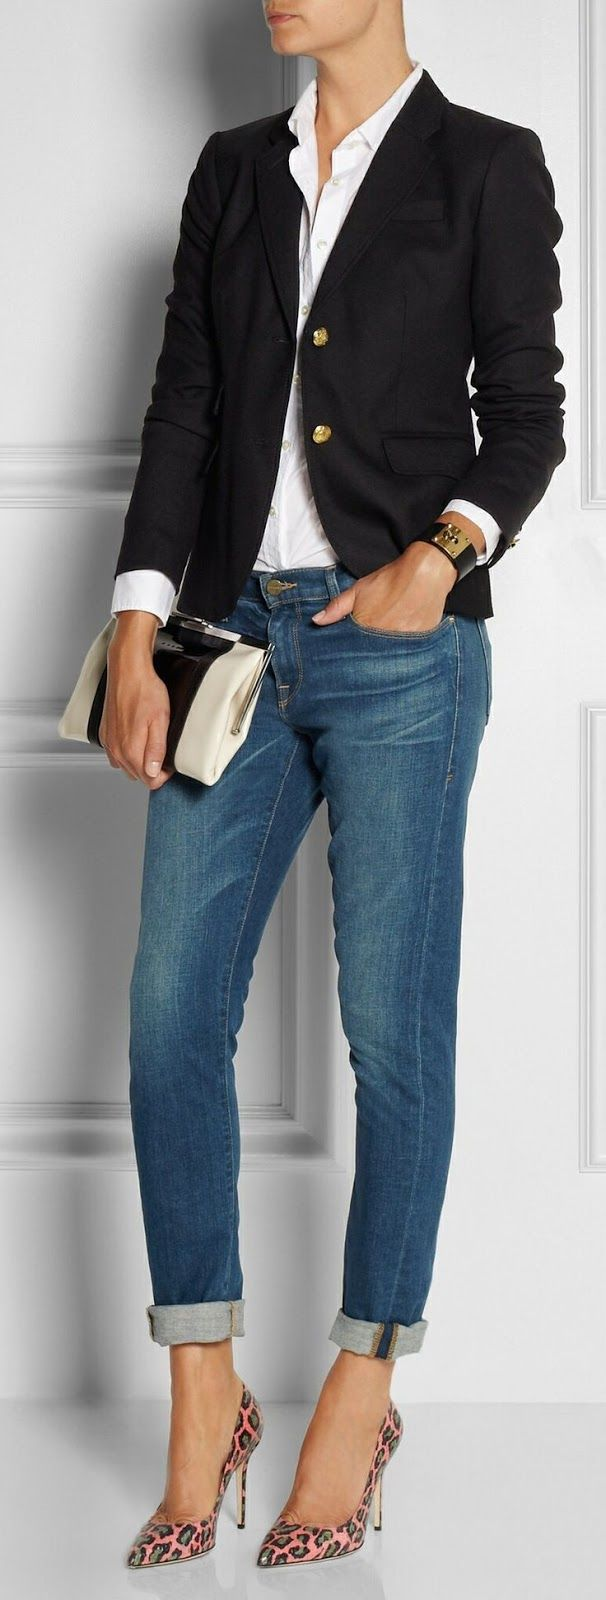 Office outfit | Boyfriend jeans, animal prints heels and blazer | Latest fashion trends